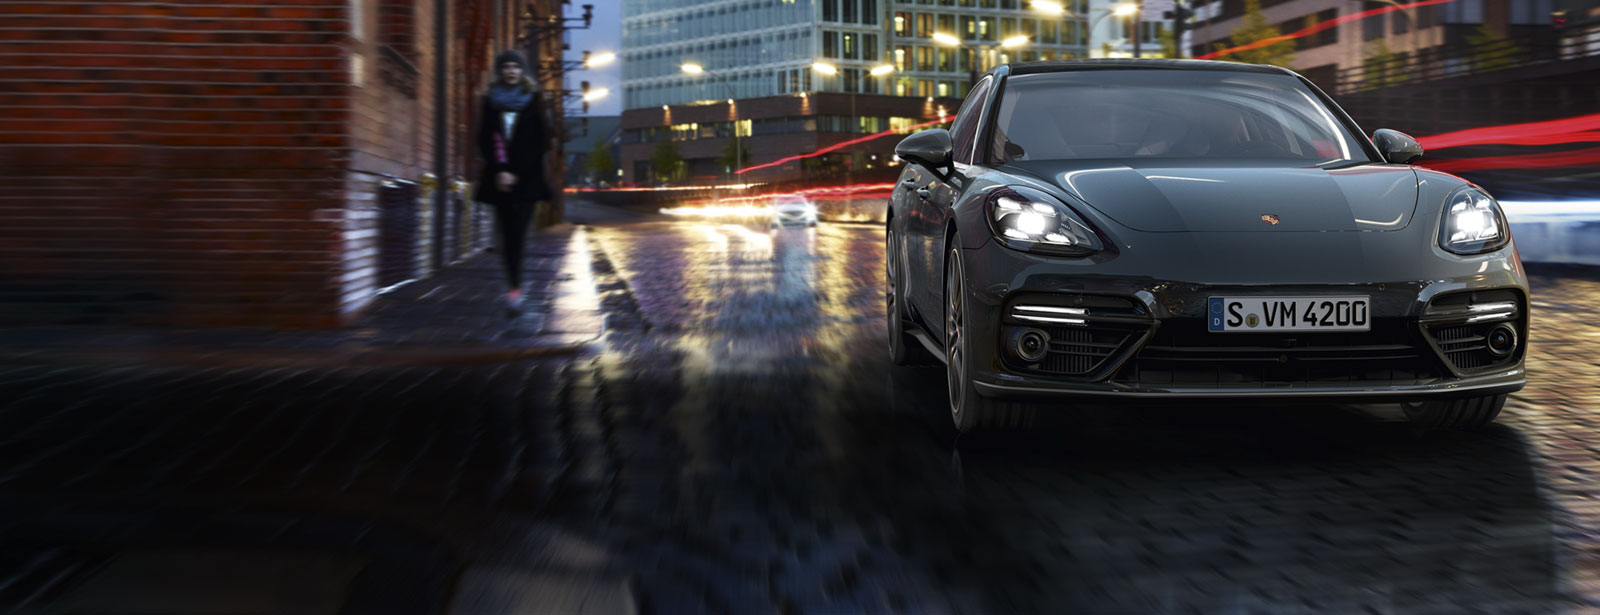 Porsche - Panamera Turbo - Courage changes everything.